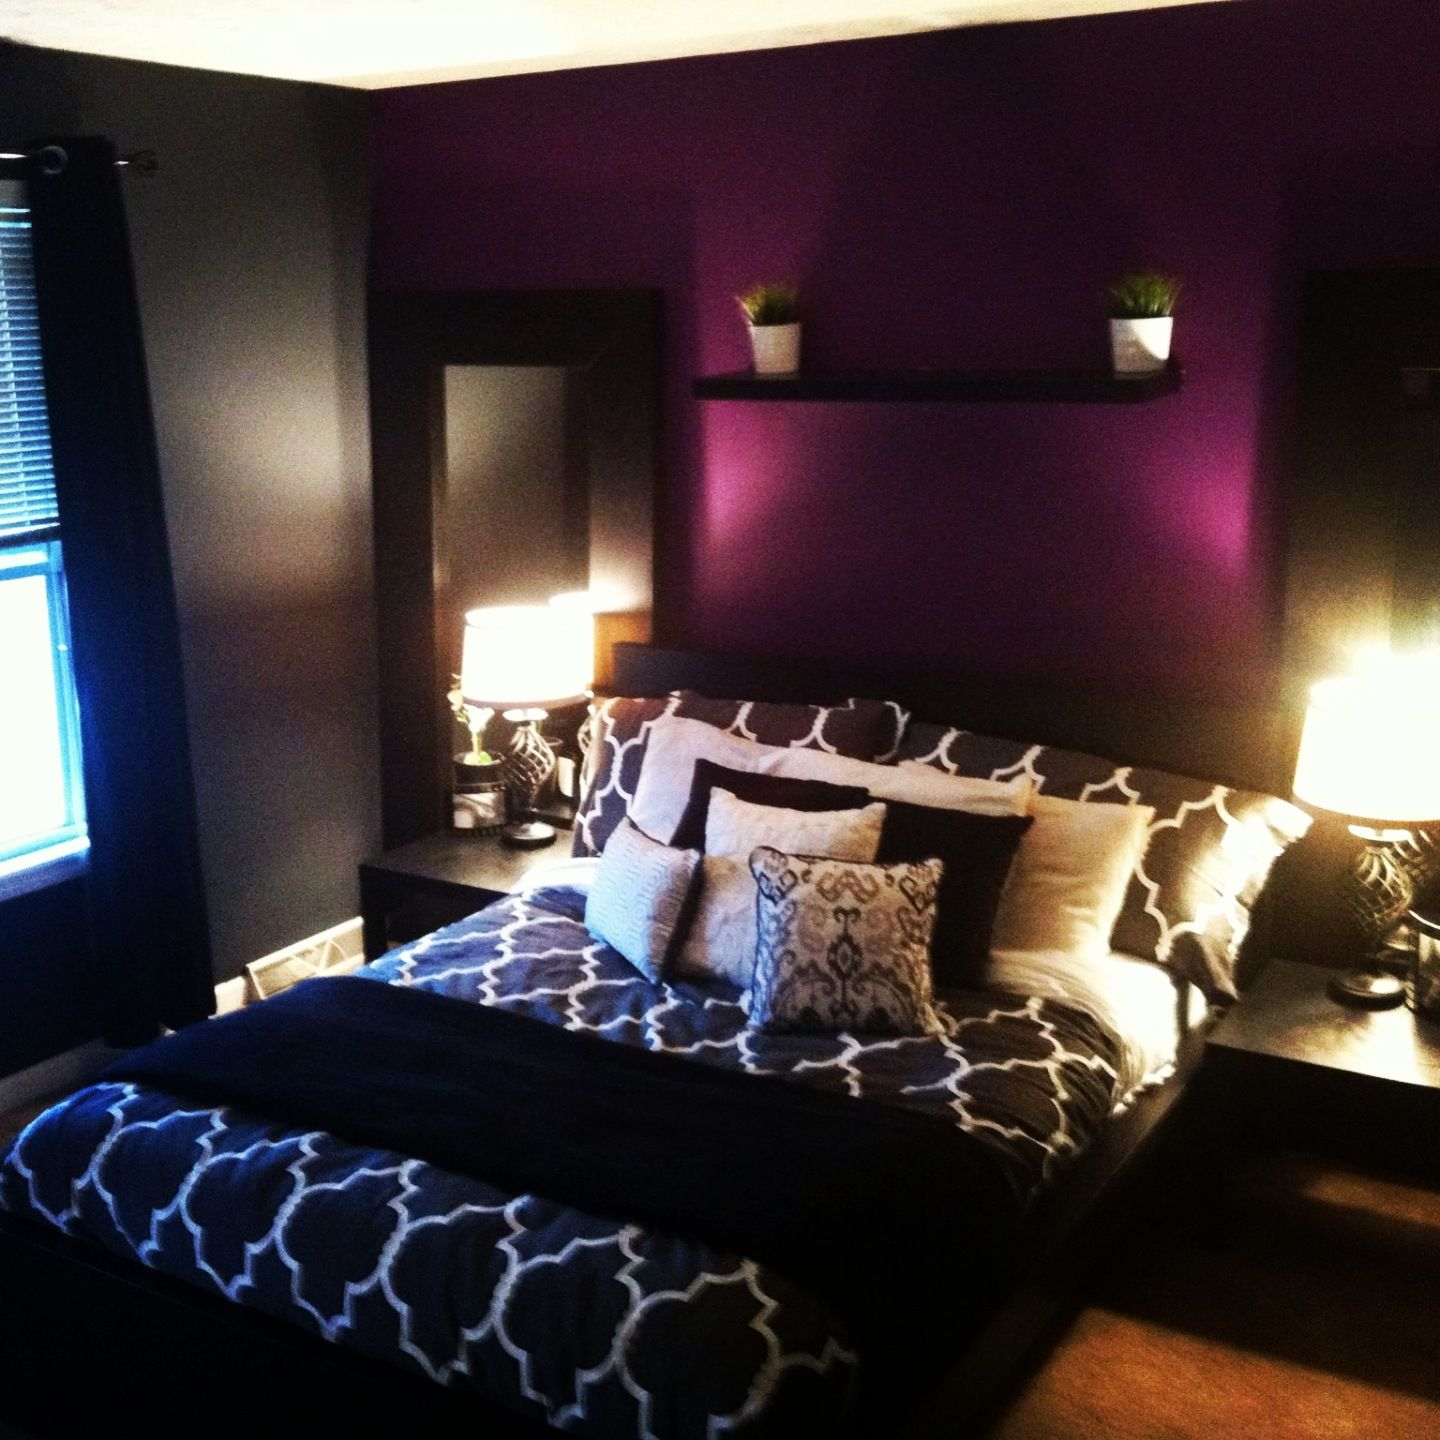 Superior Deep Purple Bedroom Ideas Part - 4: LOVE The Dark Purple Wall! U003d) Would Be Cute In My Master Bed Room!